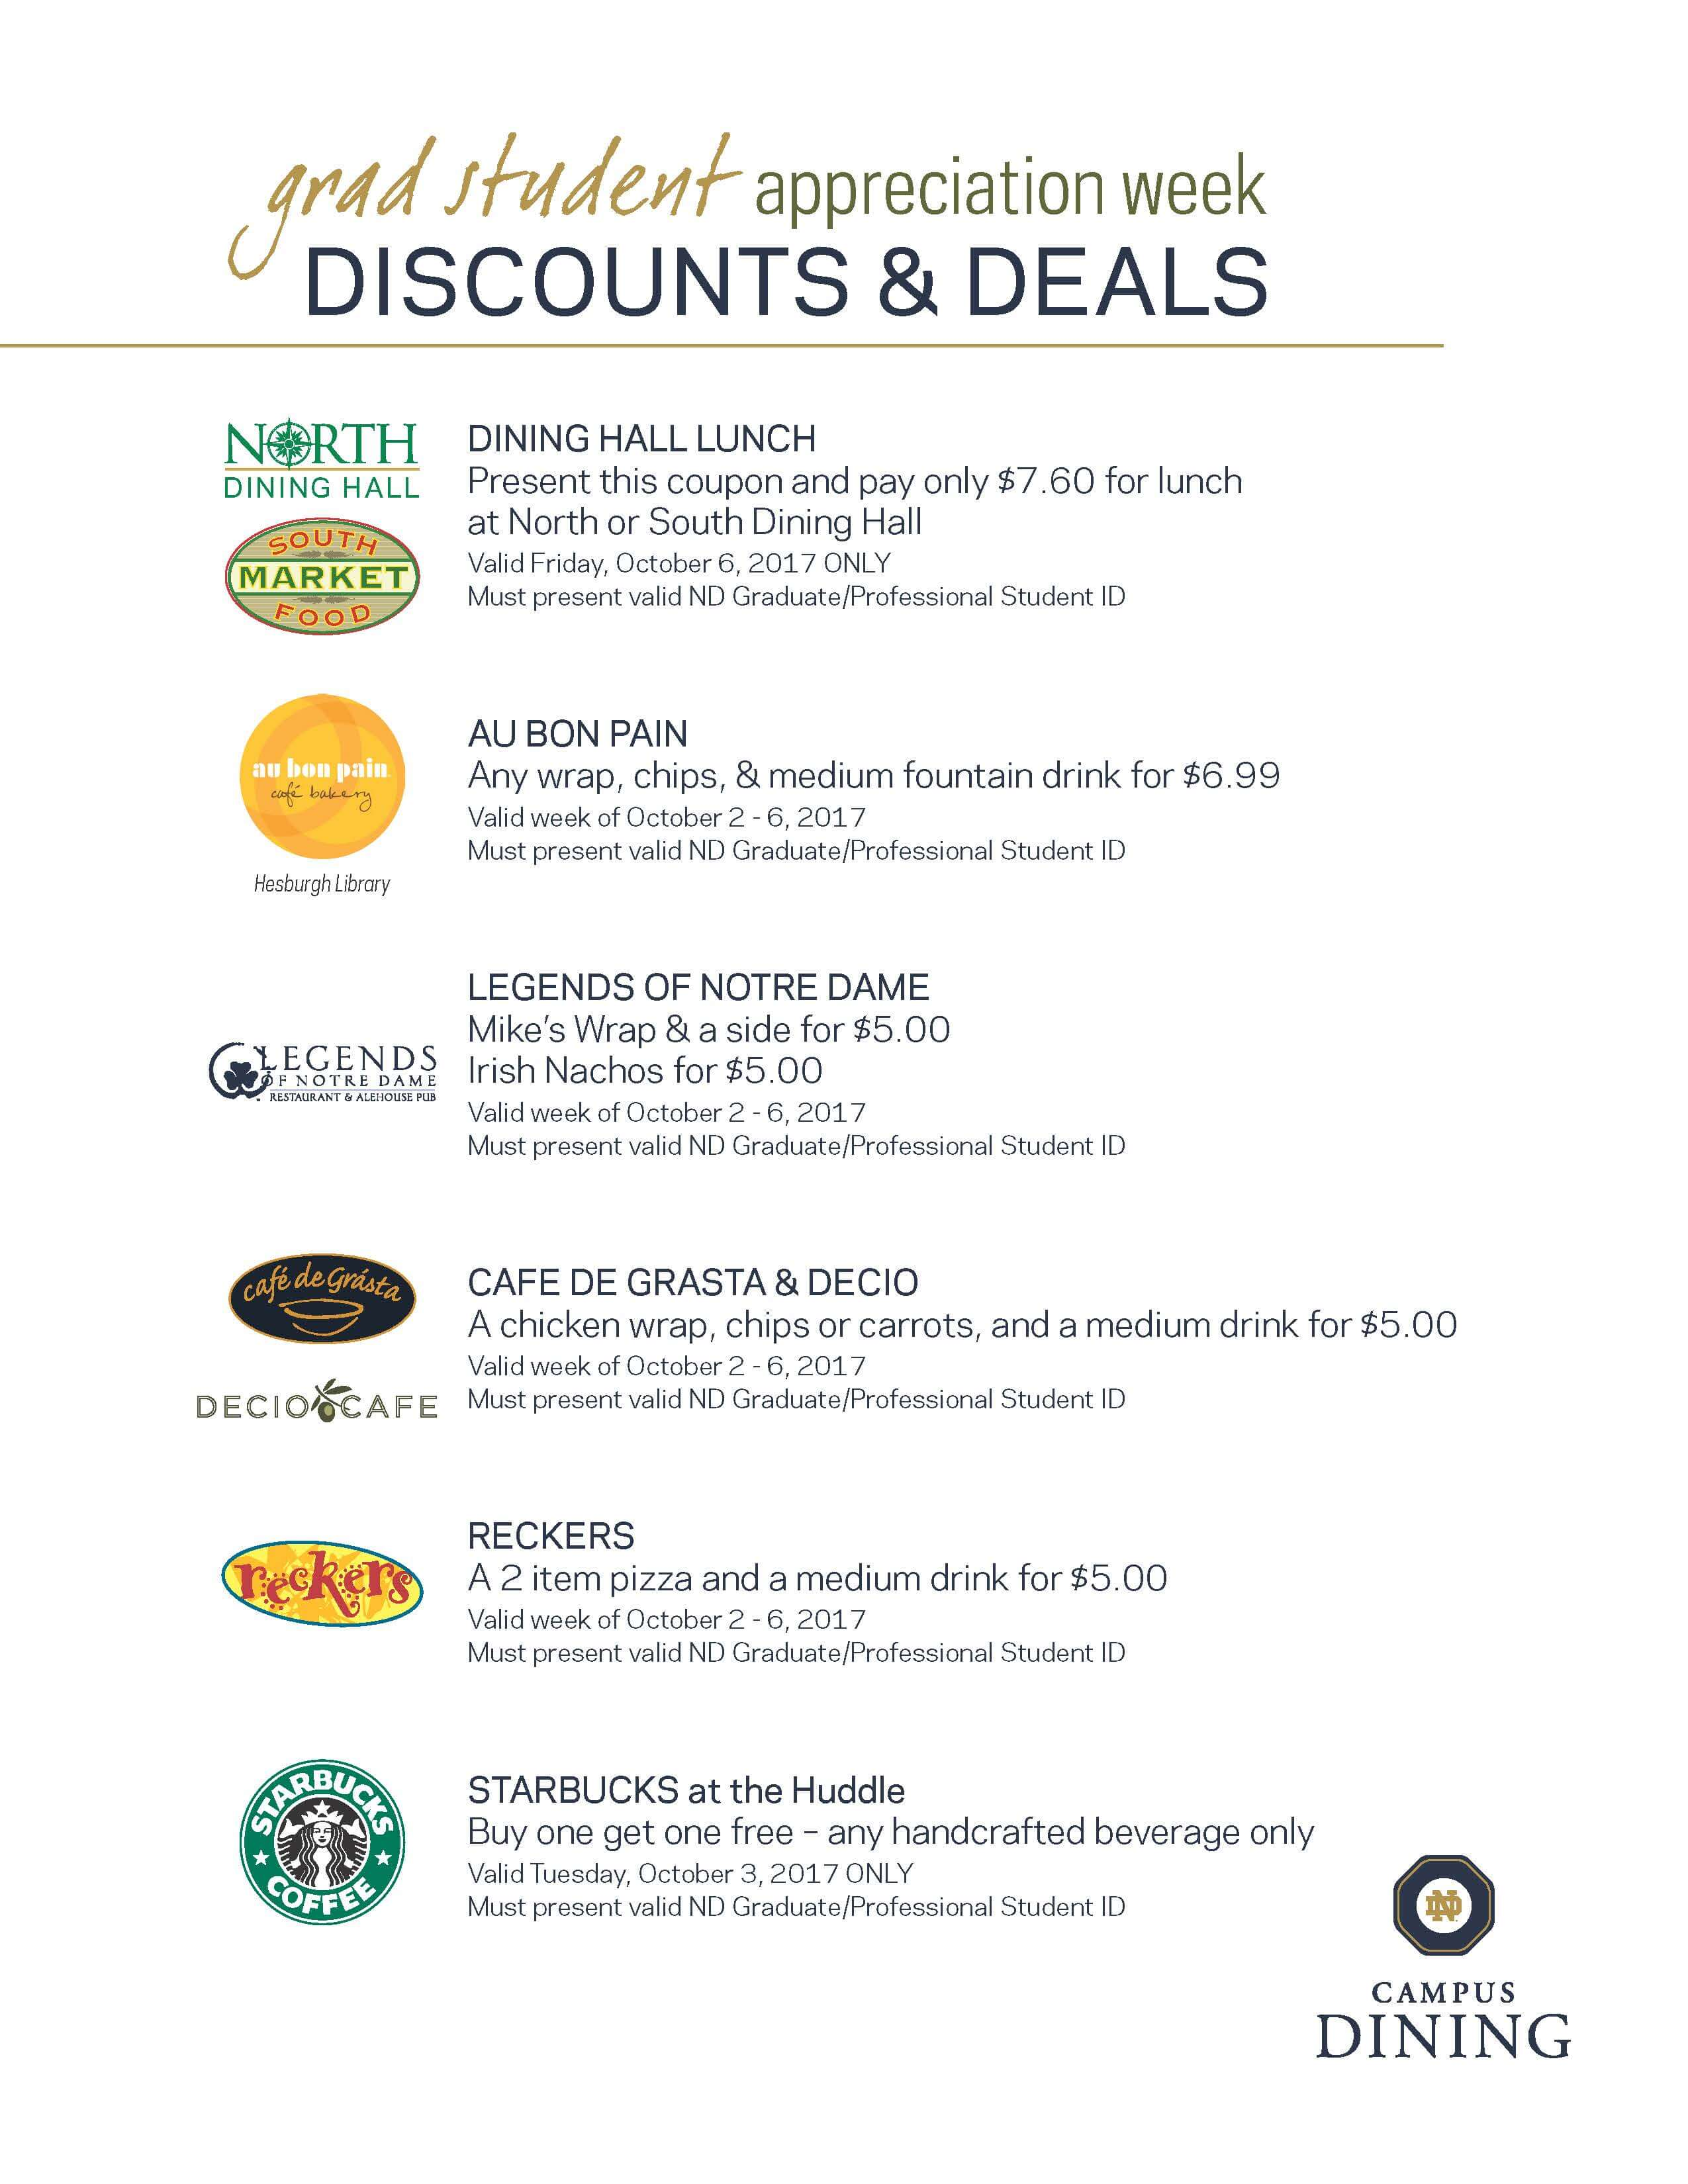 Campus Dining Coupons Revised